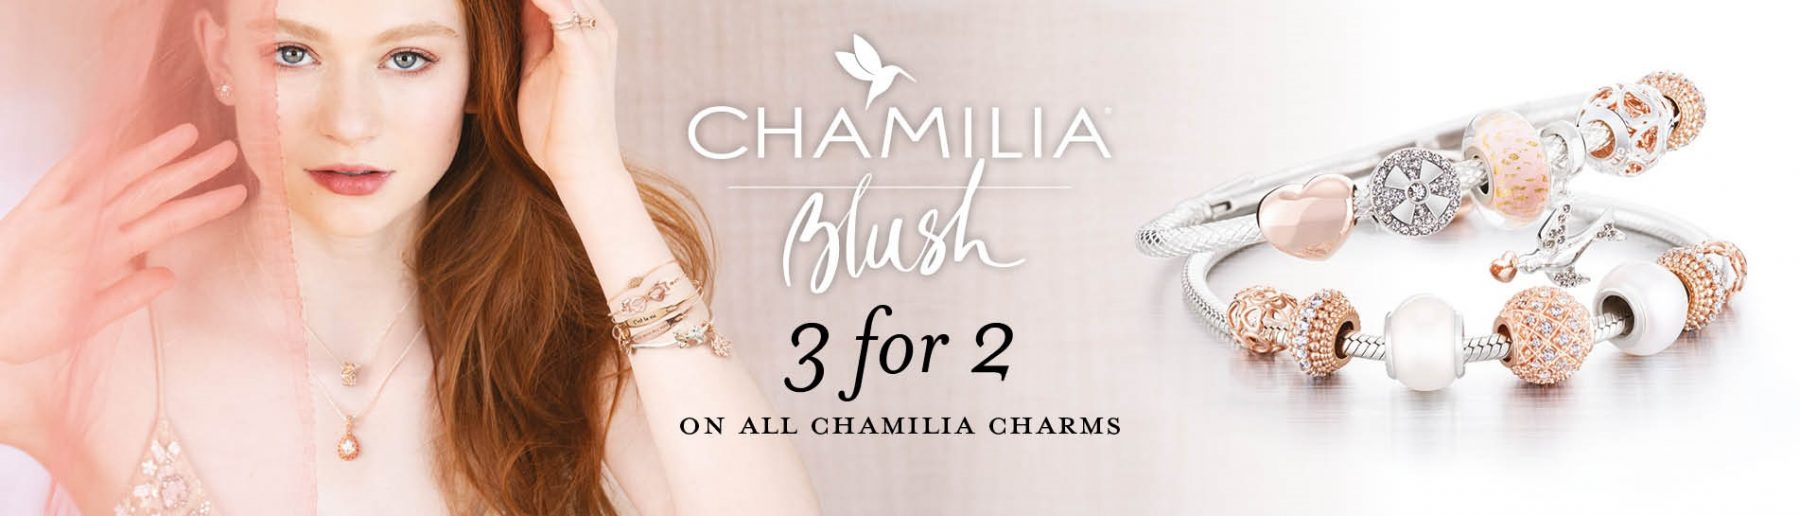 Camilia-charms-offer-2018